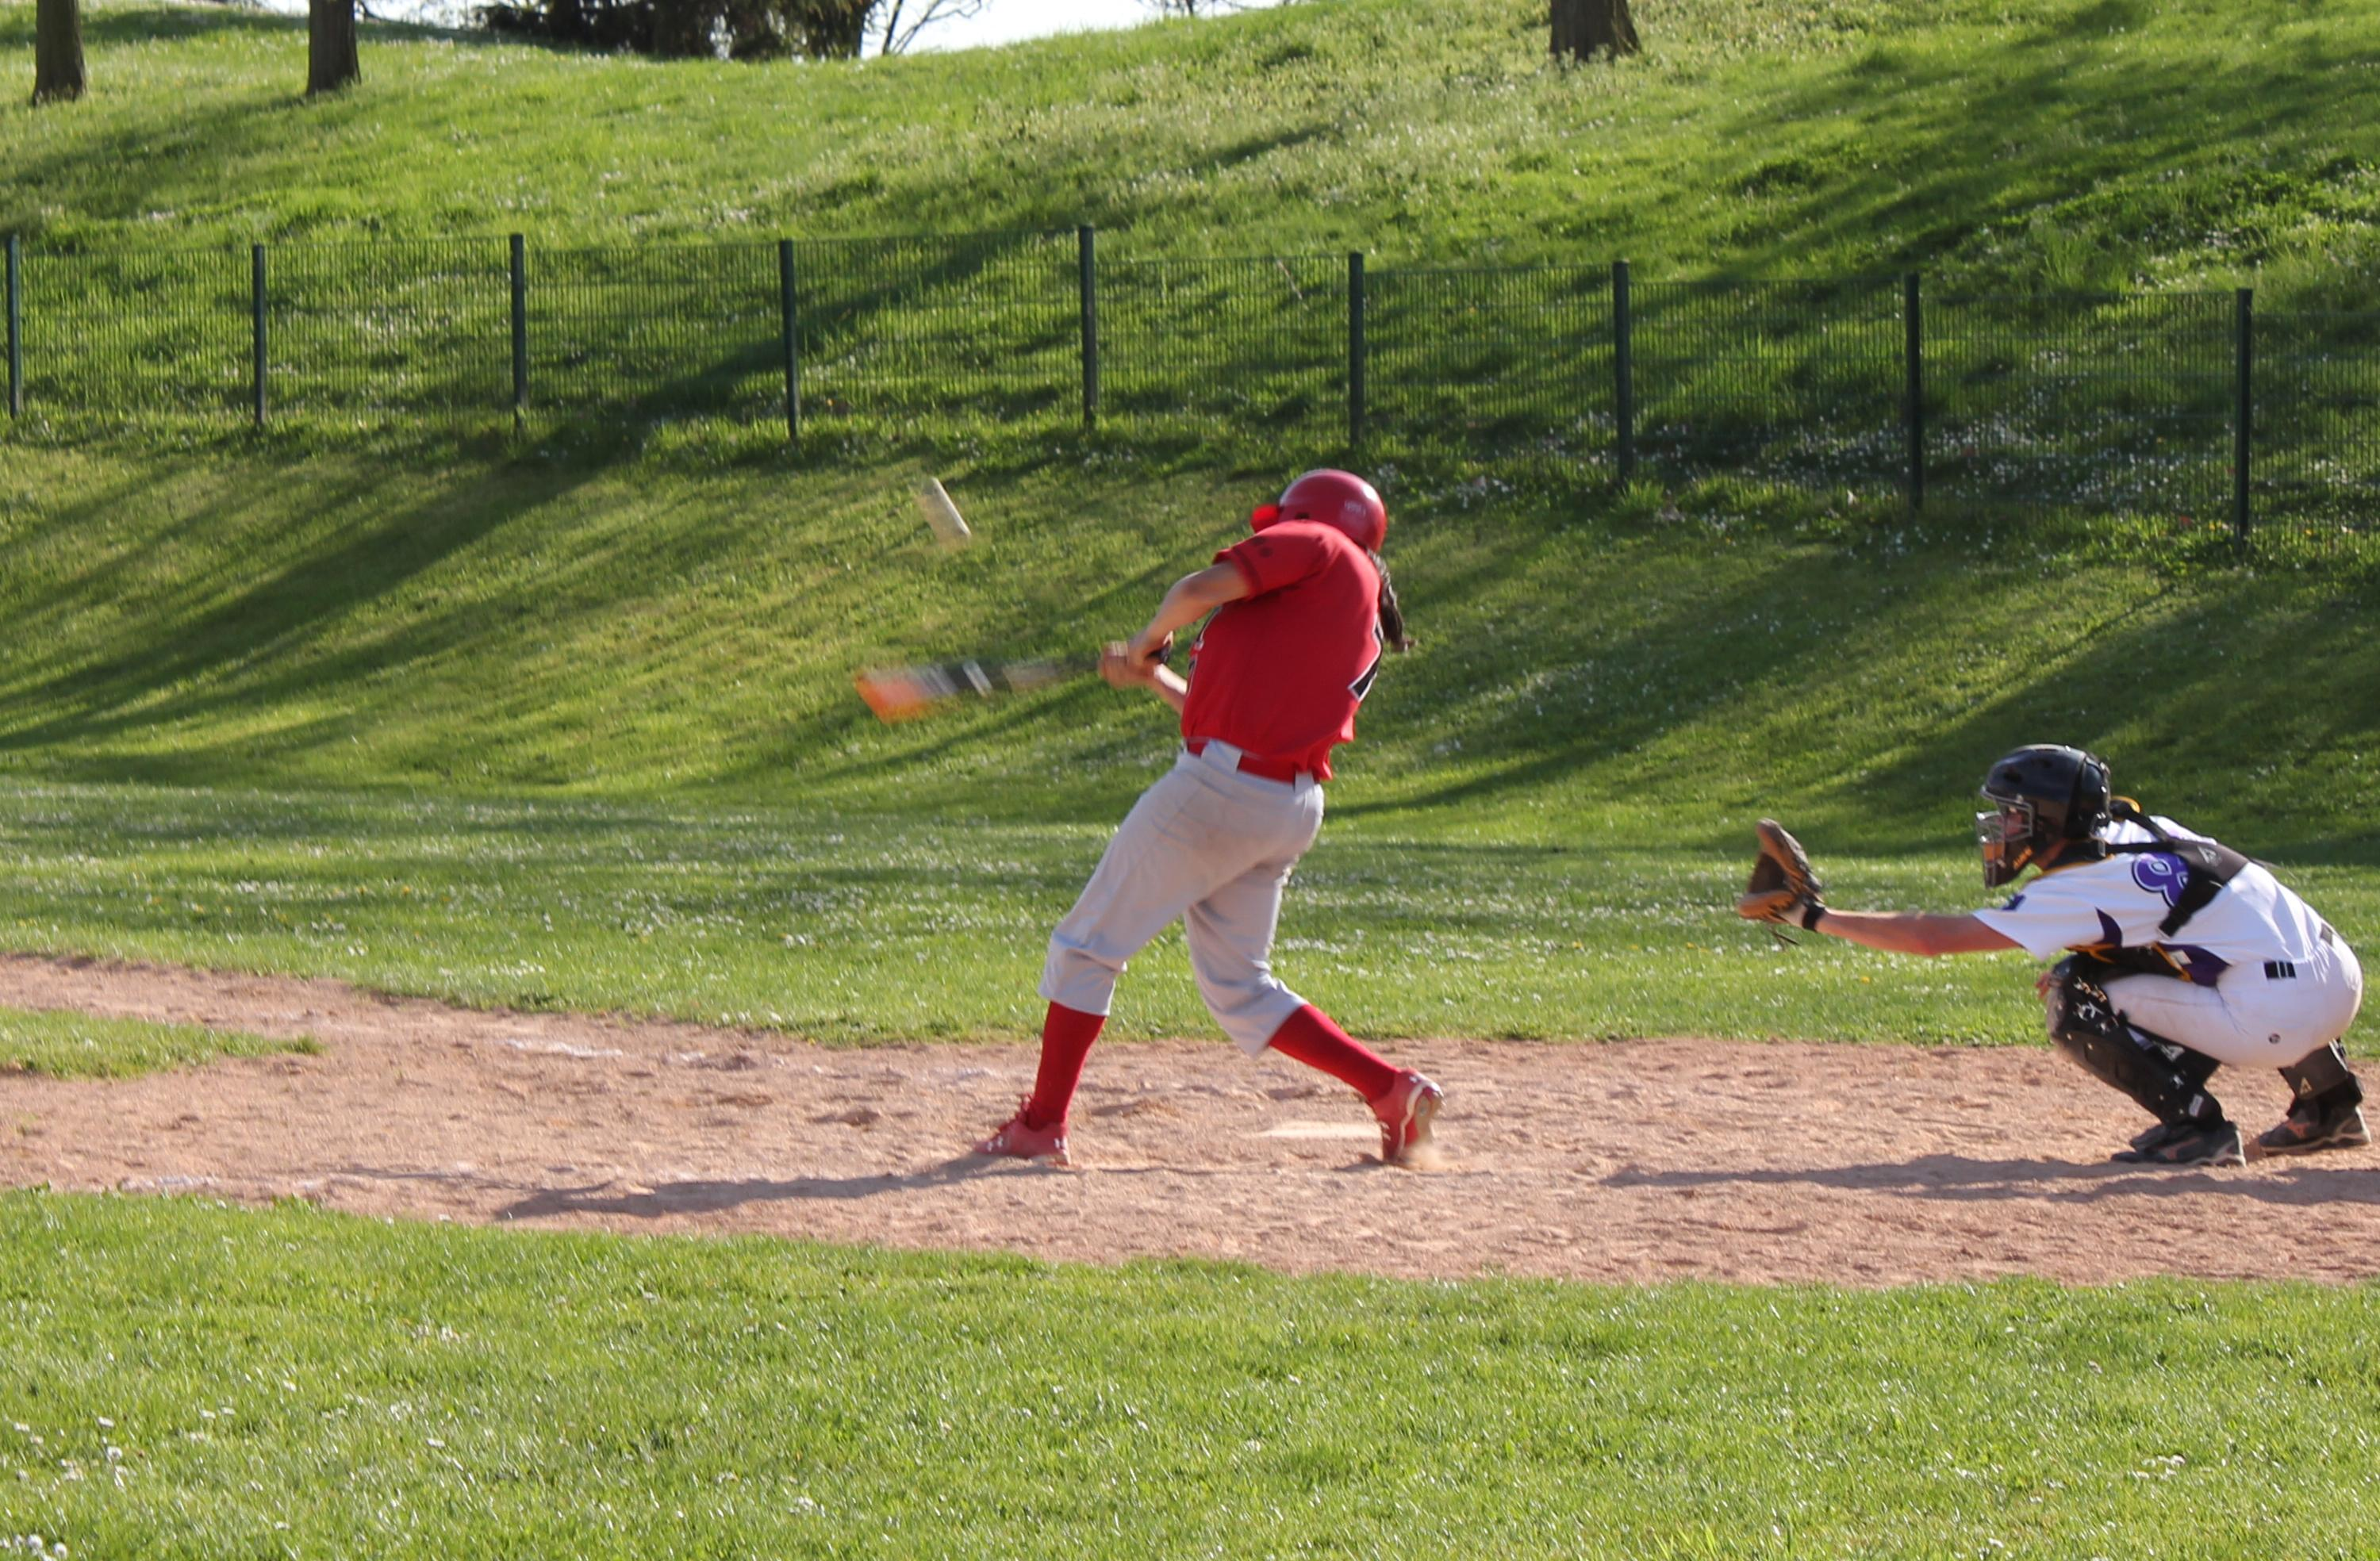 2011-04-10 - Baseball vs PUC 3 a Cergy (32)